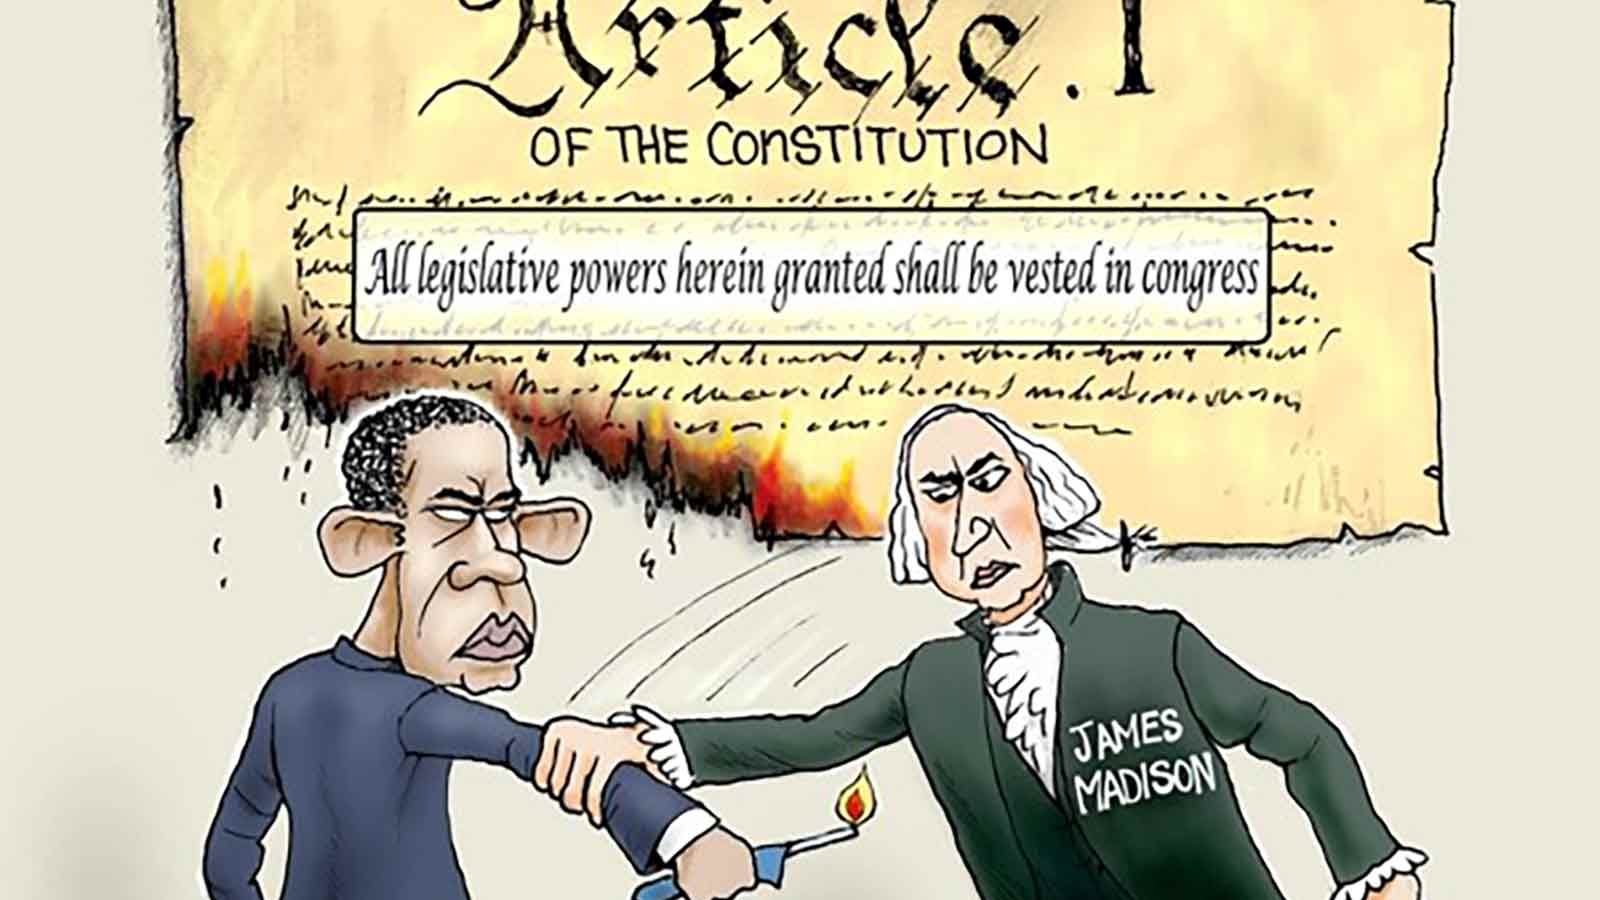 James Madison stops Barack Obama from relighting the Constitution, illustrating the Constitution design in Article I that All legislative powers herein granted shall be vested in congress.